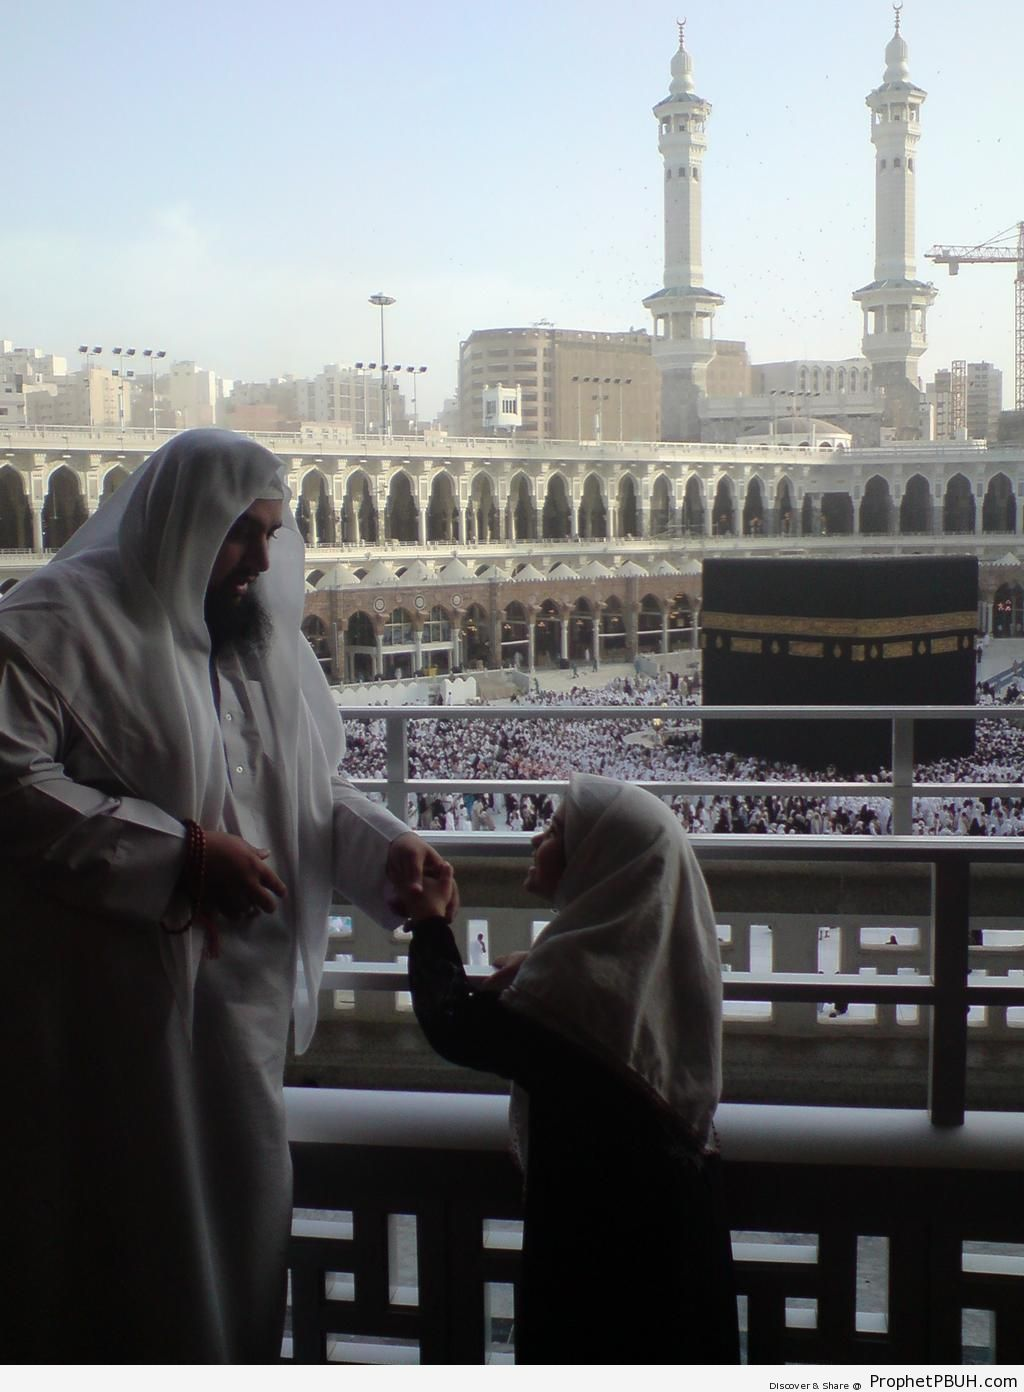 Father and Daughter at Masjid al-Haram in Makkah - al-Masjid al-Haram in Makkah, Saudi Arabia -Picture